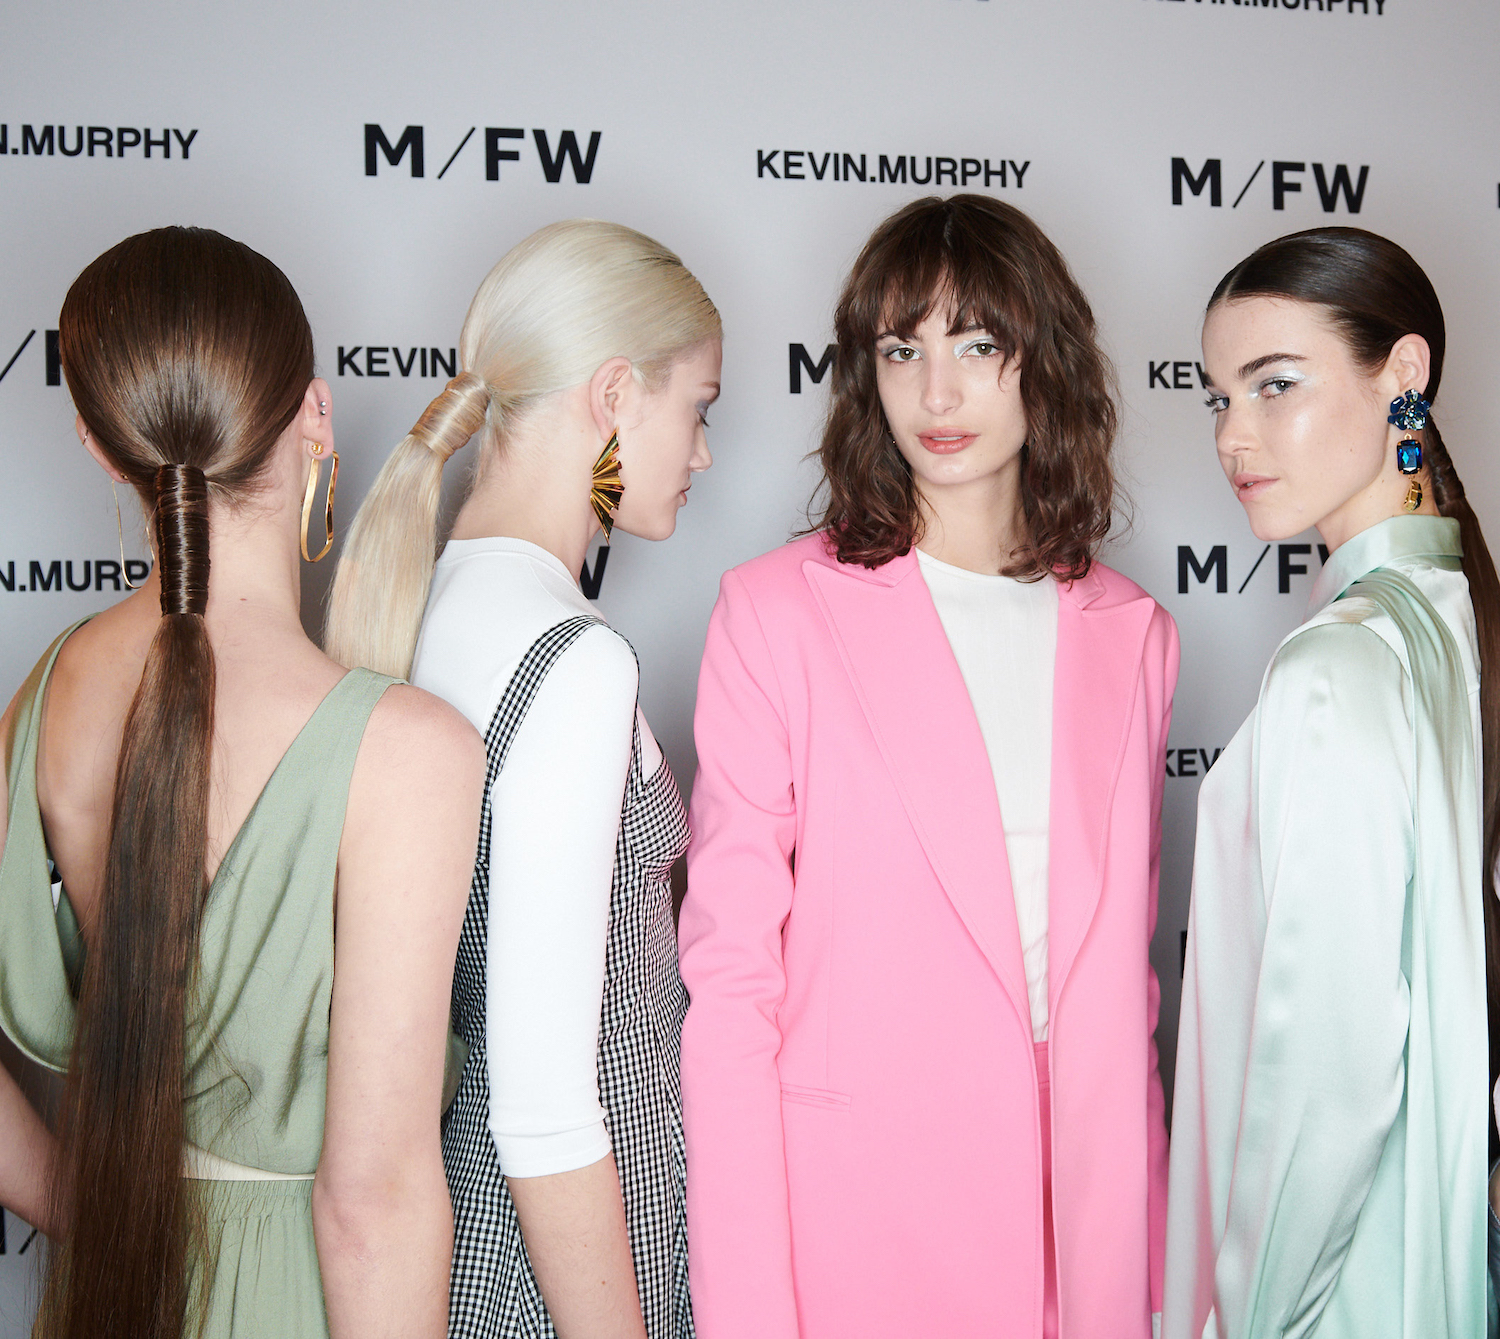 melbourne-fashion-week-runway-2 kevin-murphy-melbourne hair-melbourne